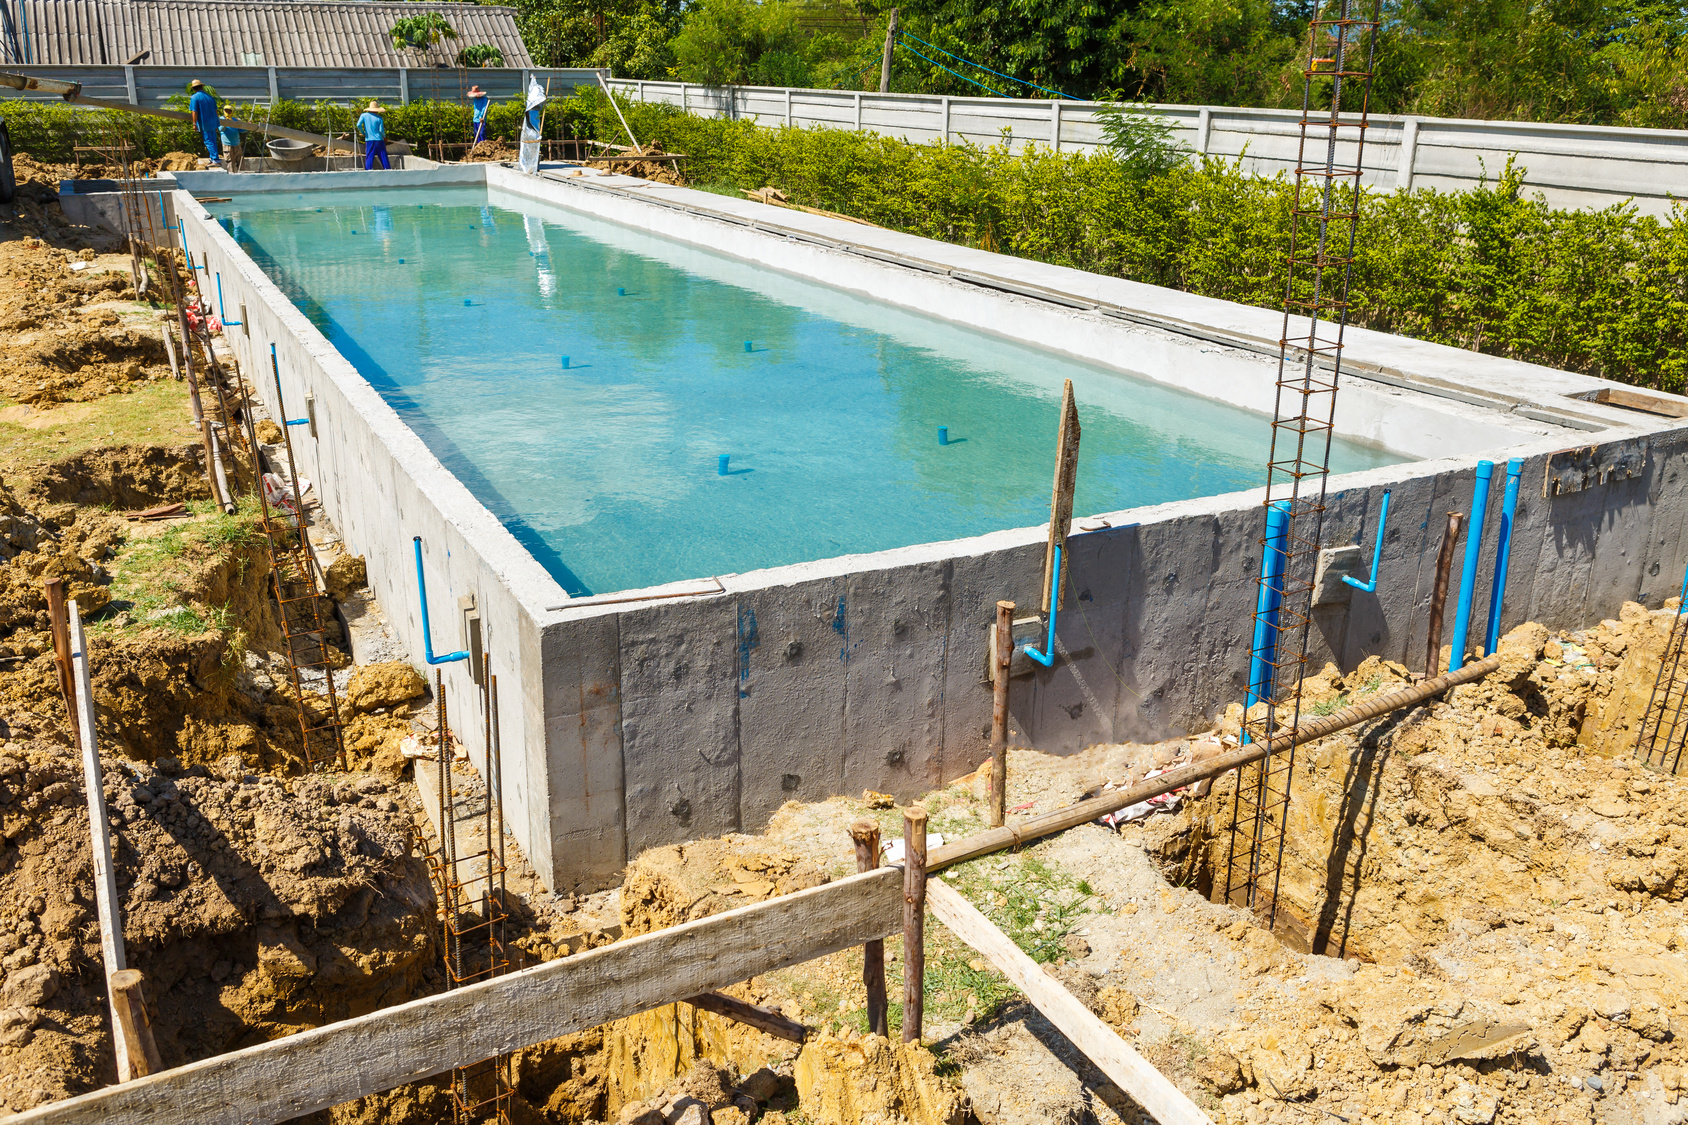 Construire une piscine b ton traditionnelle en kit - Piscine beton en kit ...